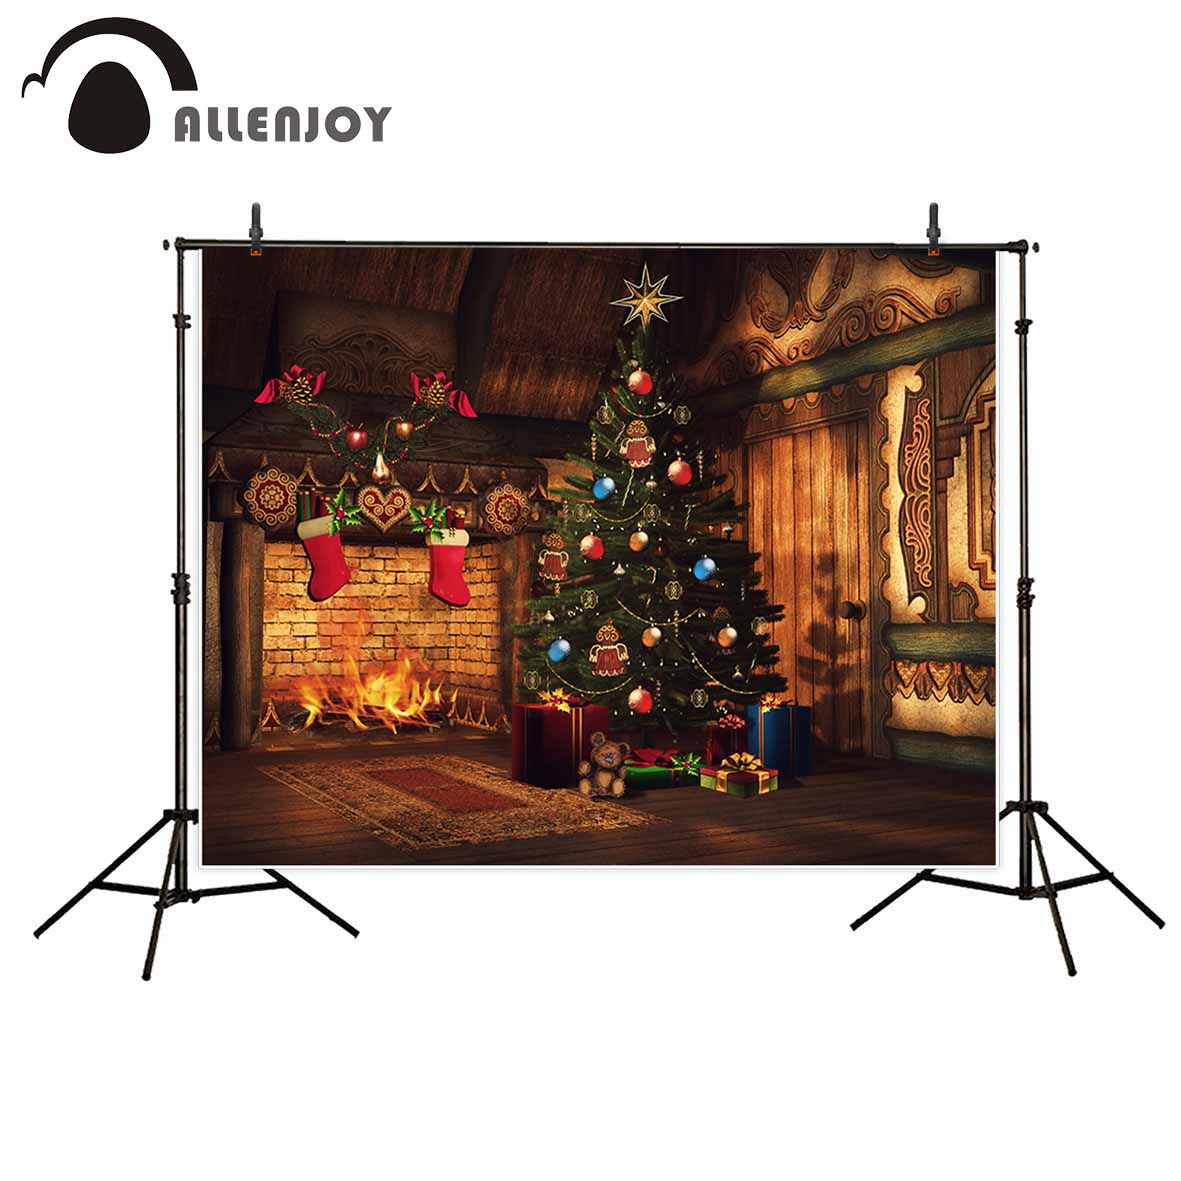 Allenjoy Christmas tree fireplace indoor photography background wood floor gifts stockings decoration baby shower photo backdrop allenjoy christmas photography backdrops christmas background gifts white brick wall wooden floor bulbs table for baby for kids